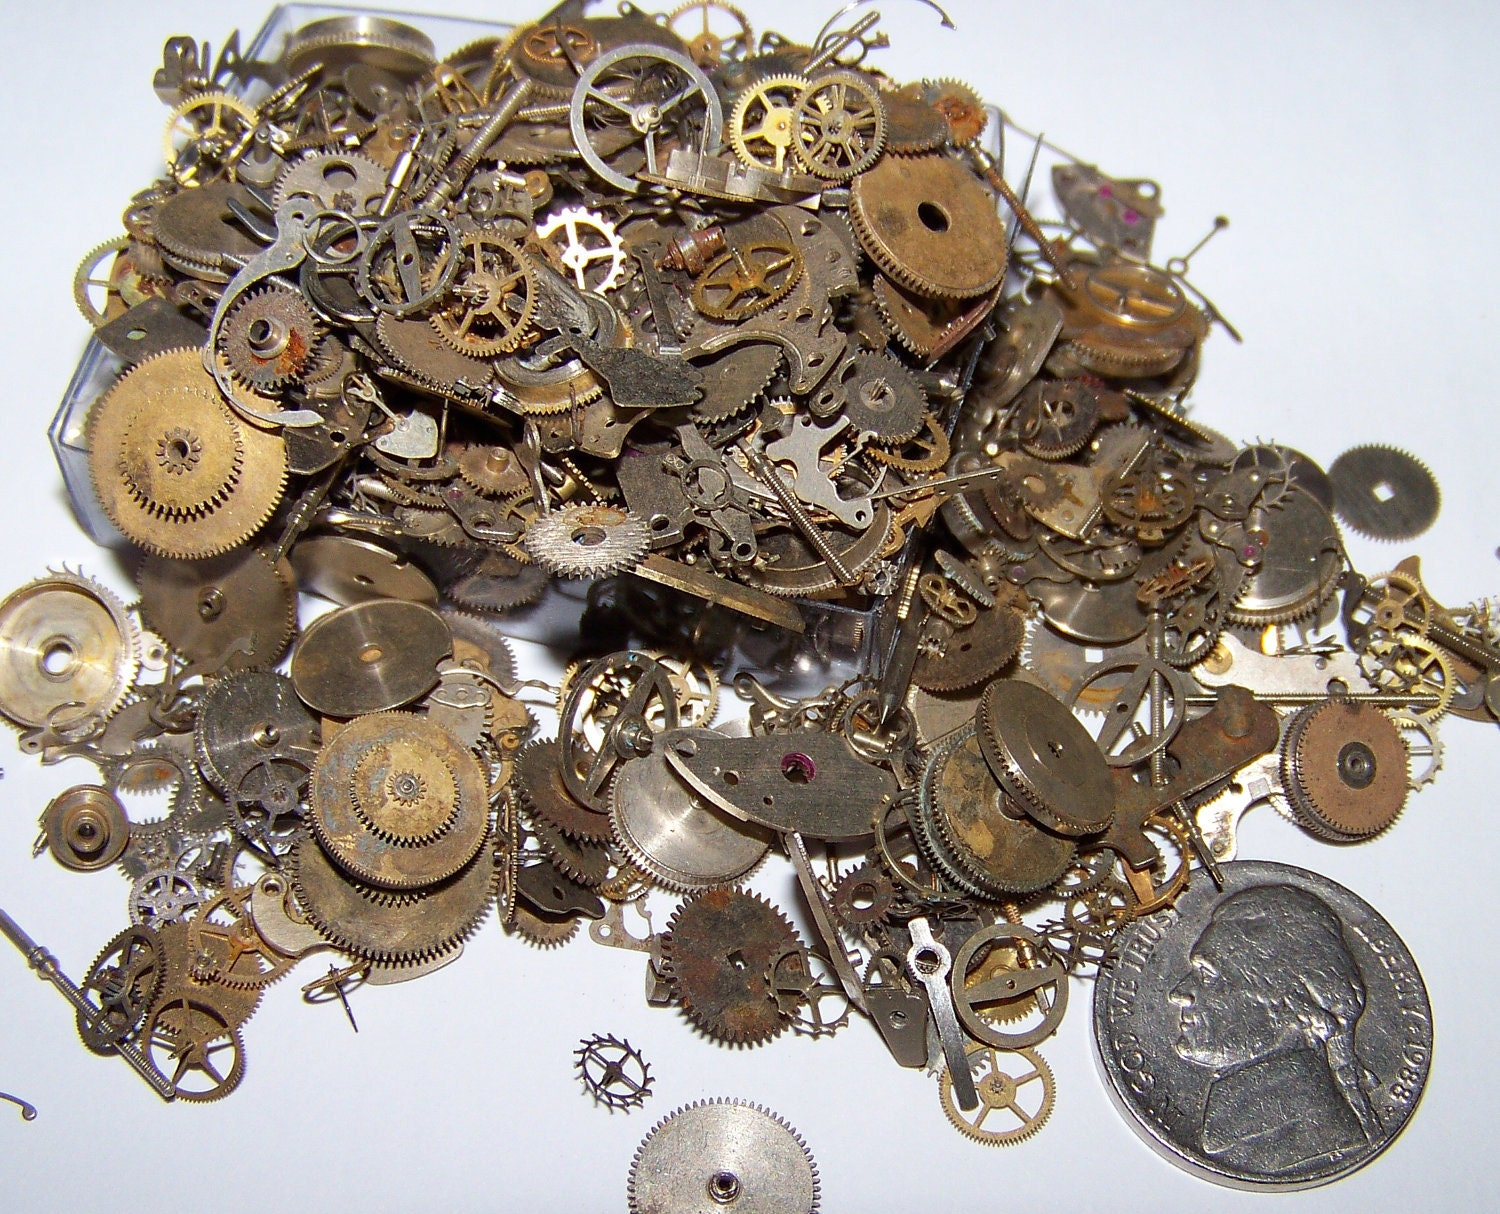 Vintage watch pieces steampunk gears decorative sample for Antique decoration pieces